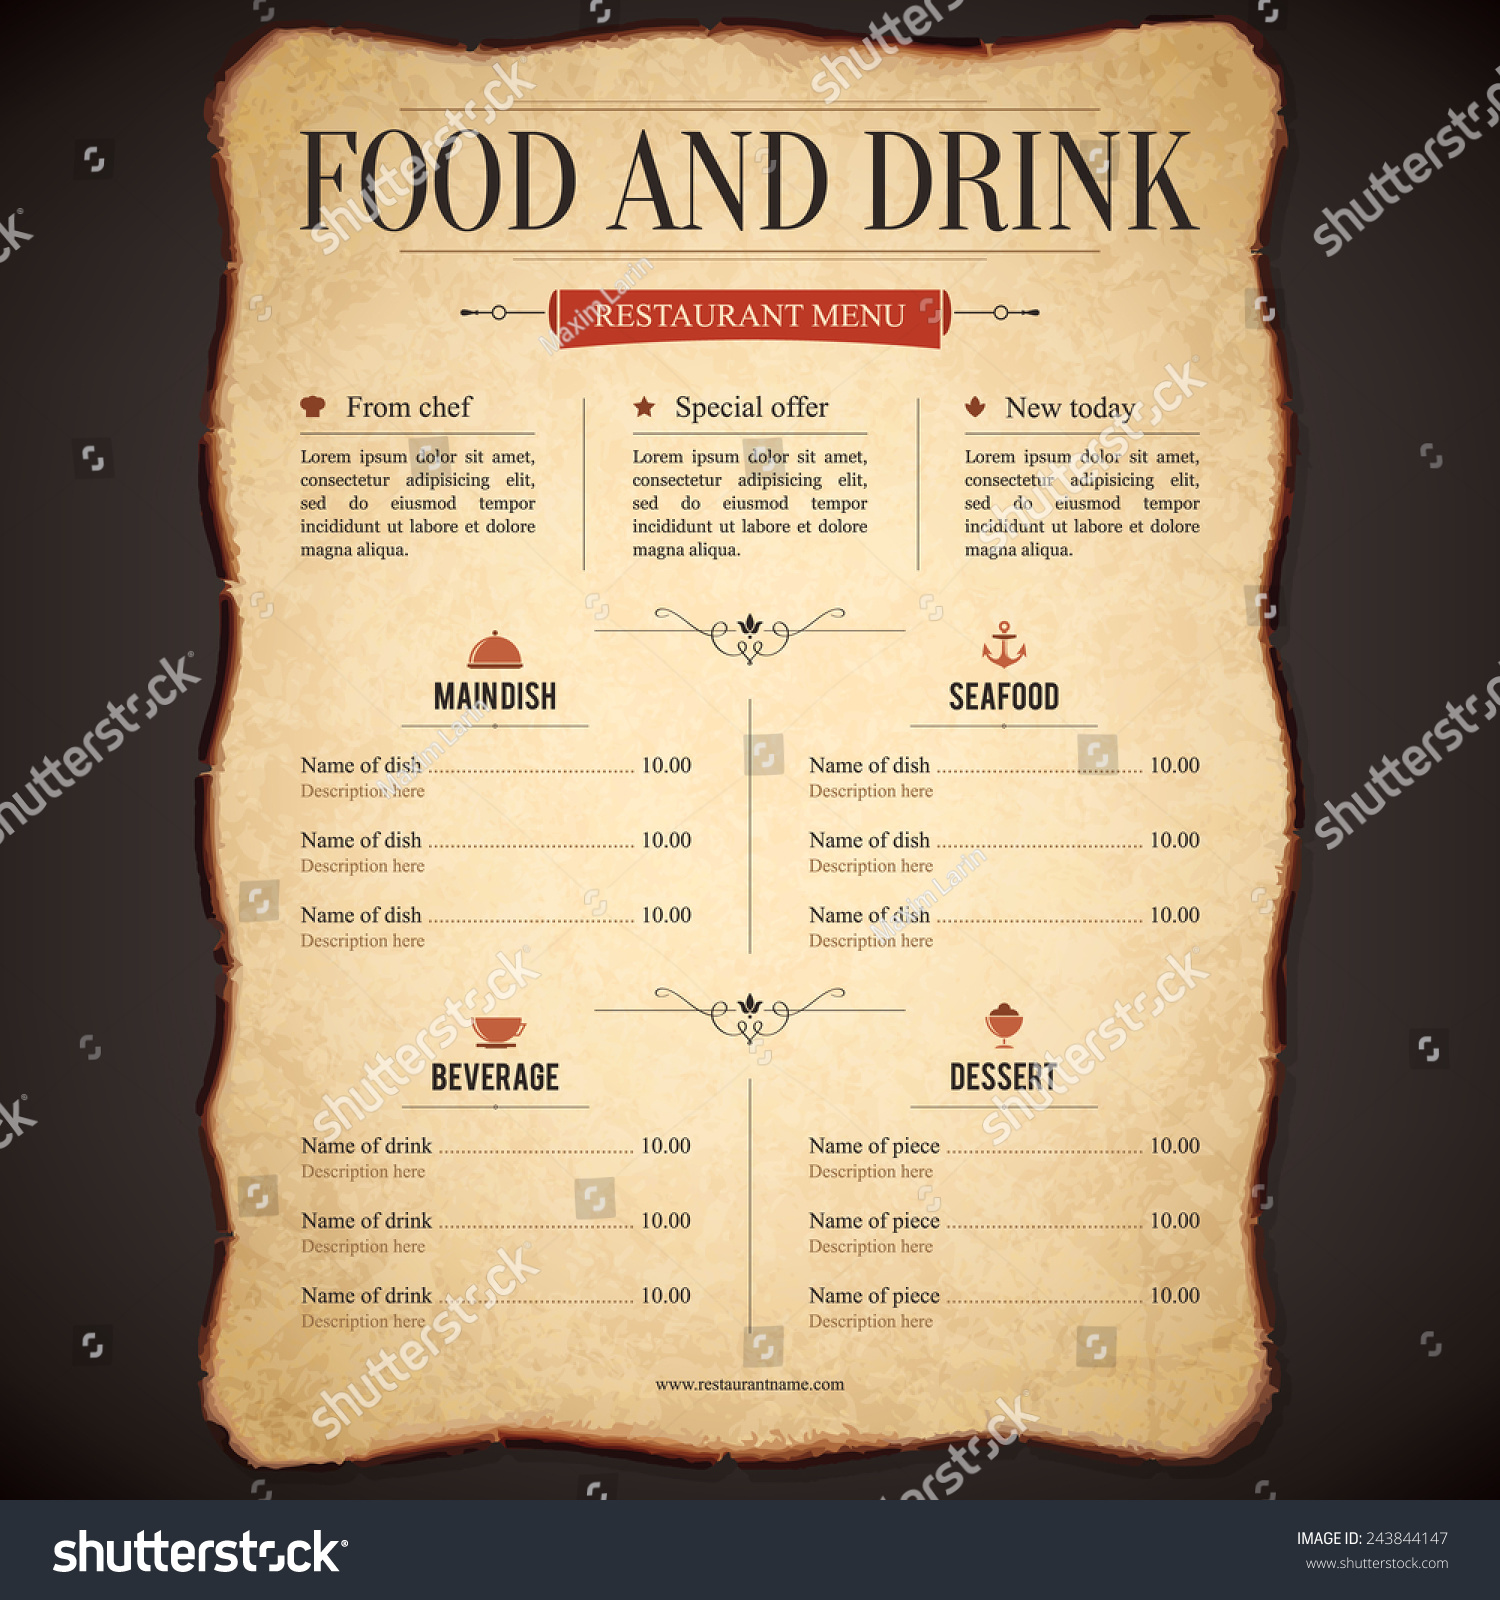 restaurant menu design vector menu brochure stock vector 243844147 vector menu brochure template for cafe coffee house restaurant